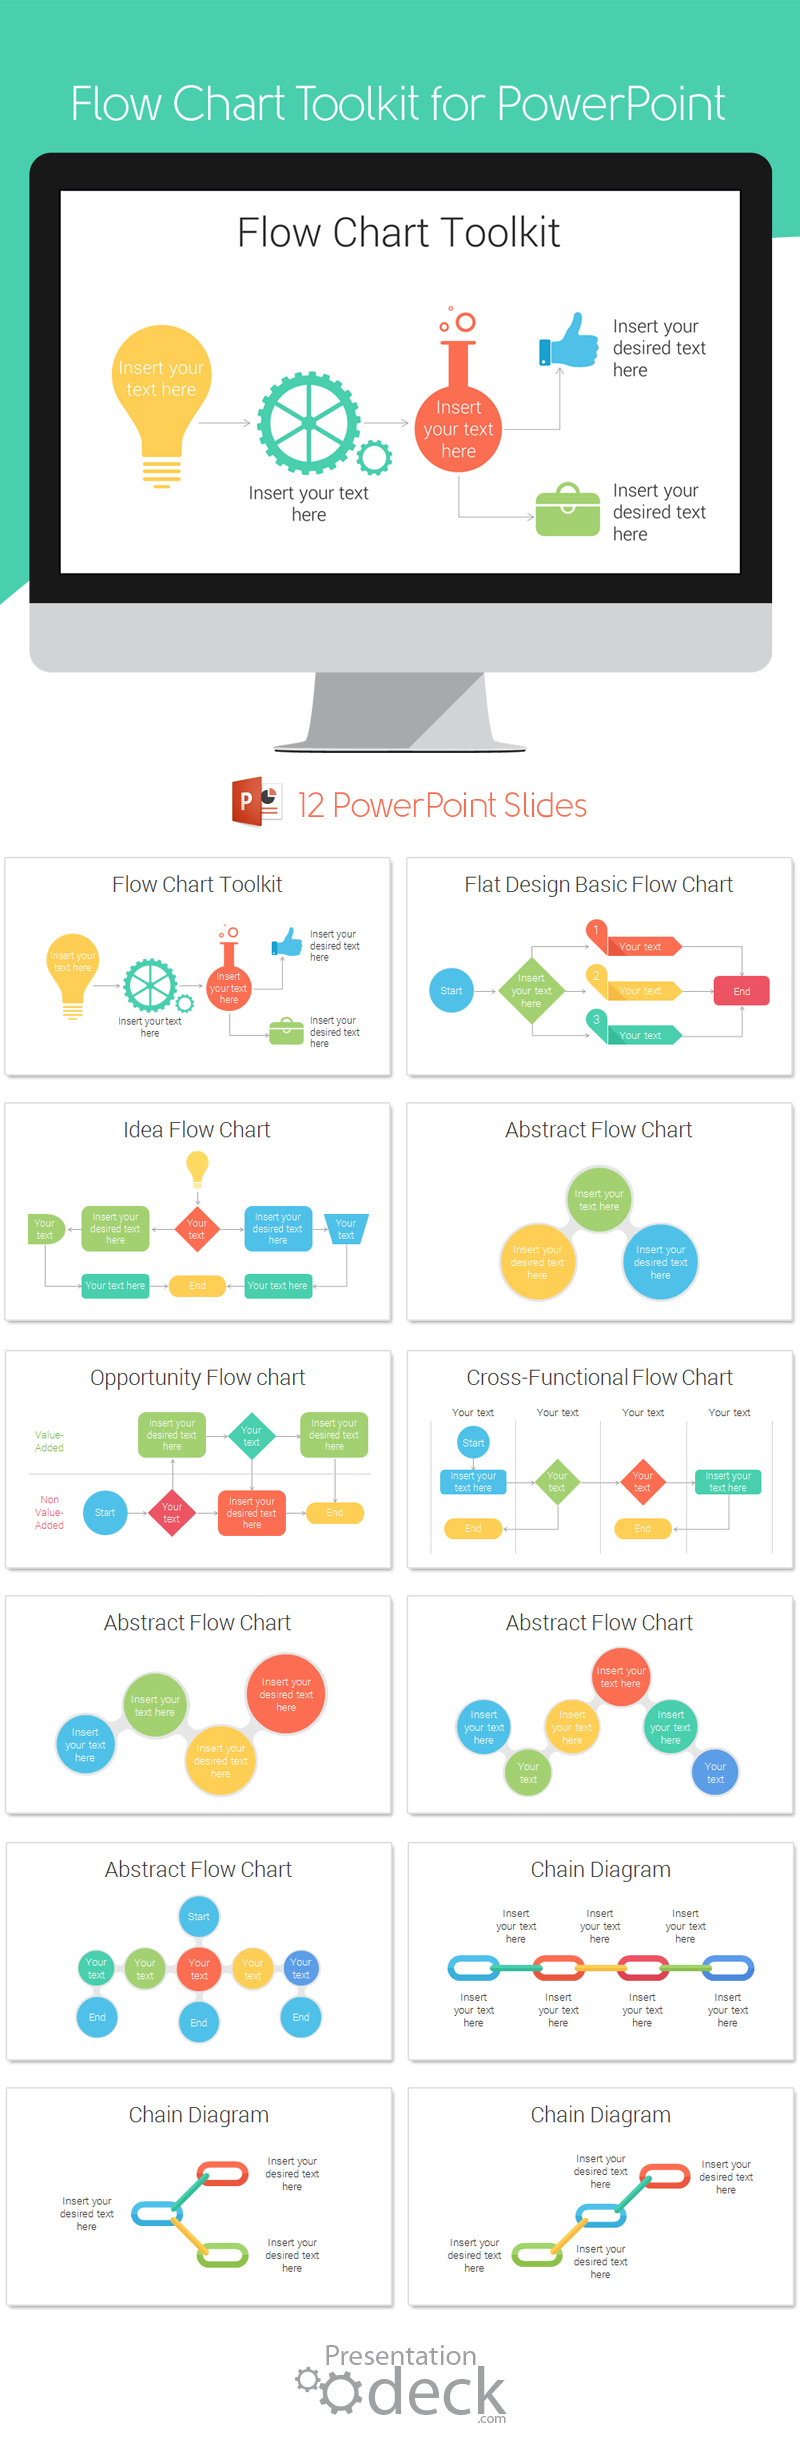 flow chart toolkit powerpoint template with 12 pre designed slides with colorful infographics  [ 800 x 2460 Pixel ]